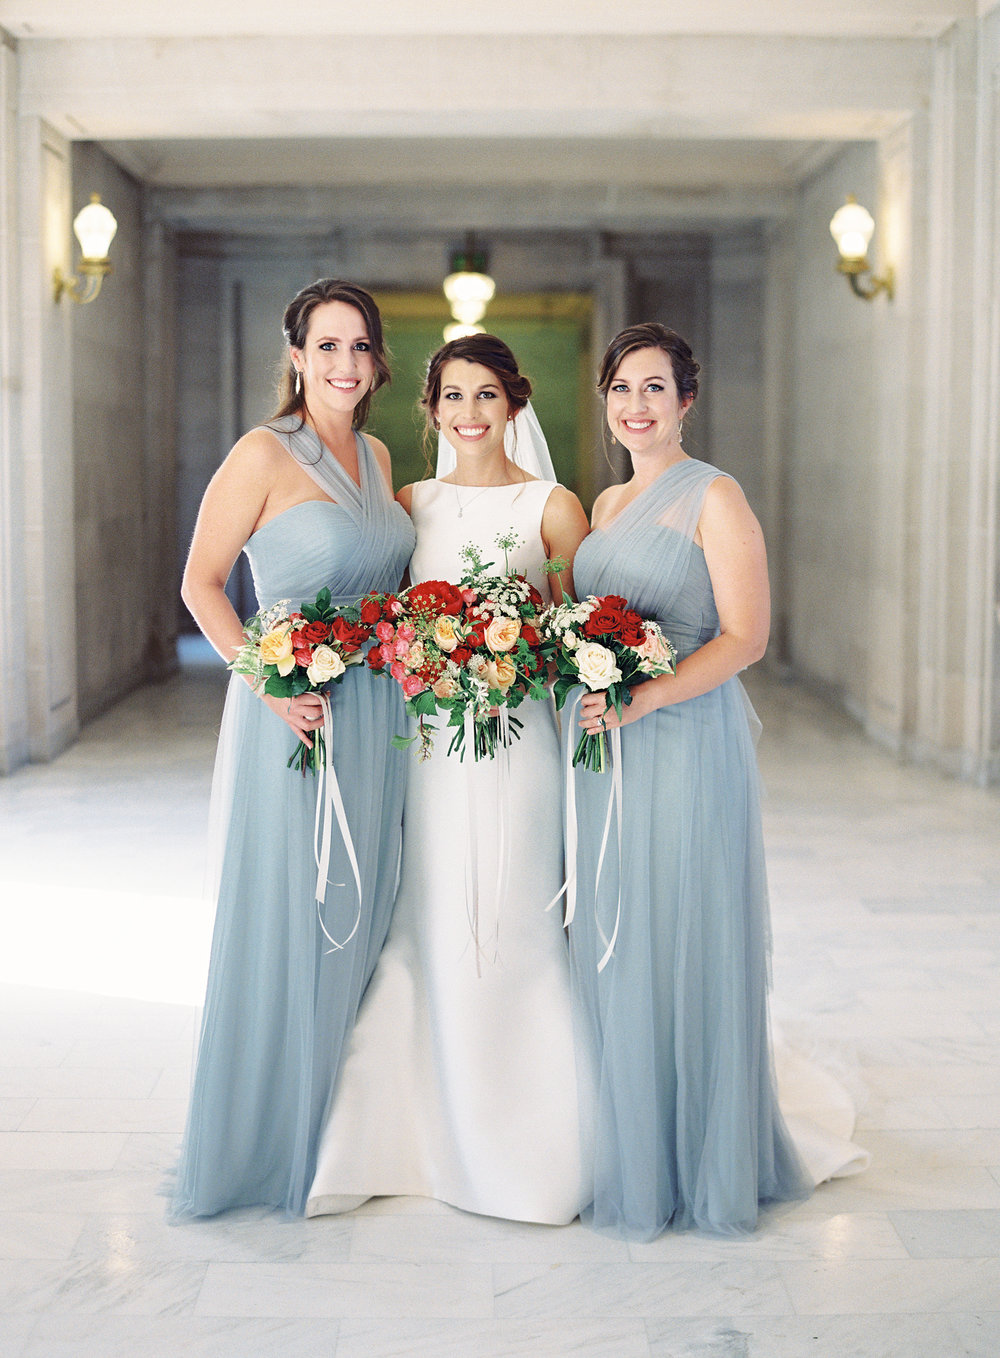 Meghan Mehan Photography - California Wedding Photographer | San Francisco City Hall Wedding 061.jpg